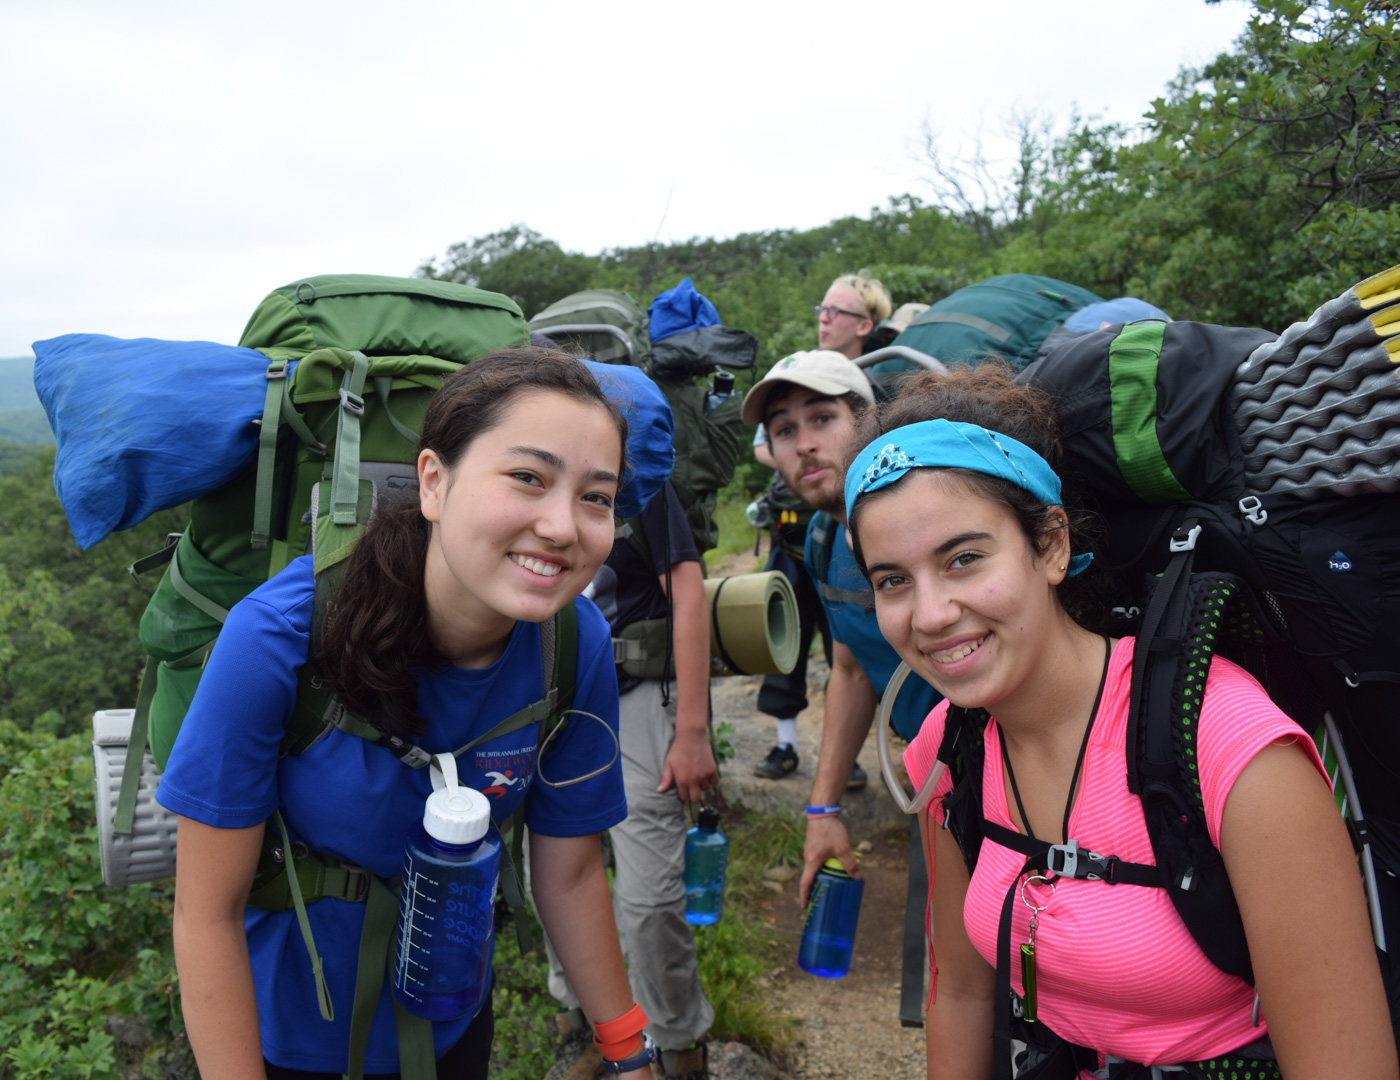 Campers on a backpacking trip in the mountains